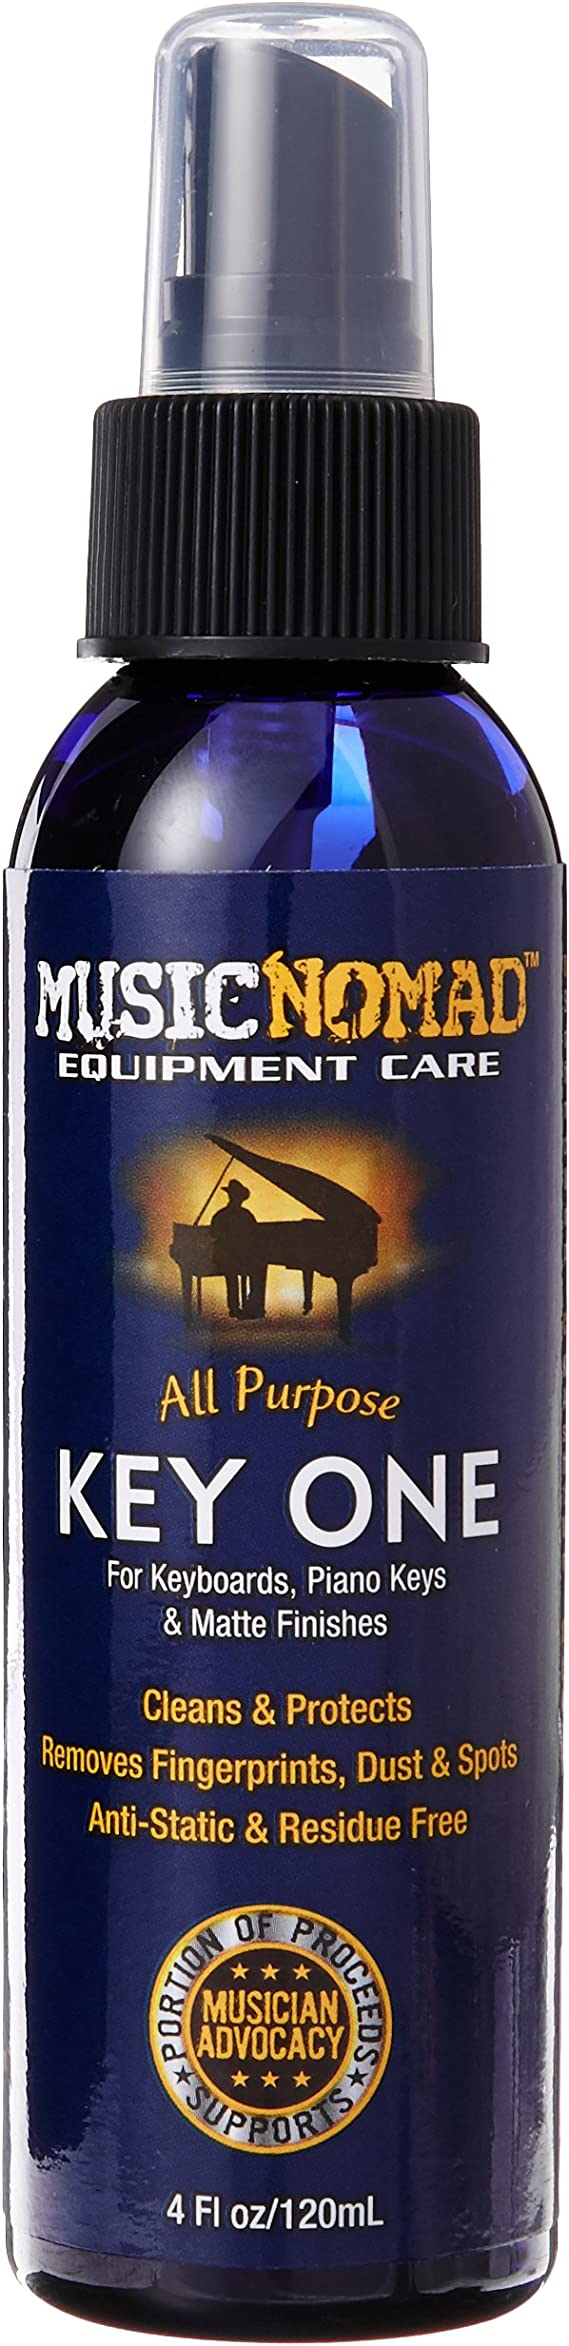 MusicNomad MN131 All Purpose Key One Cleaner